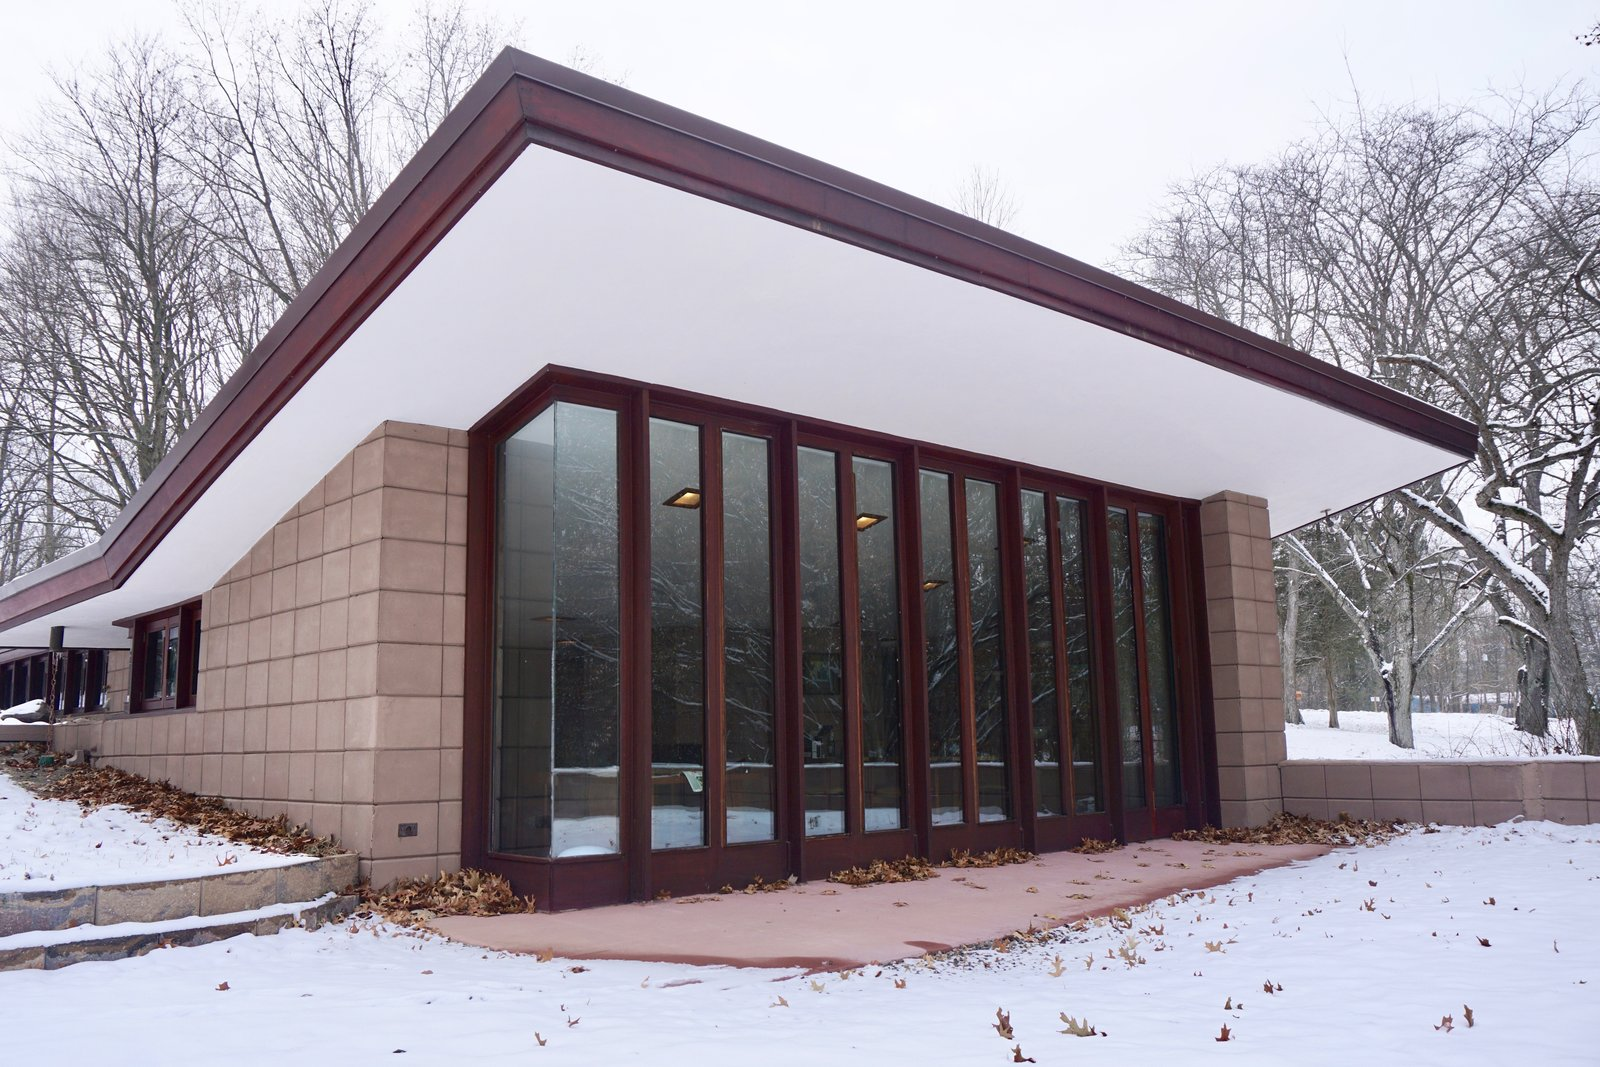 The cantilevered roofs and trim have been carefully painted and restored.  Large windows blend the exterior terrace with the inside living space.